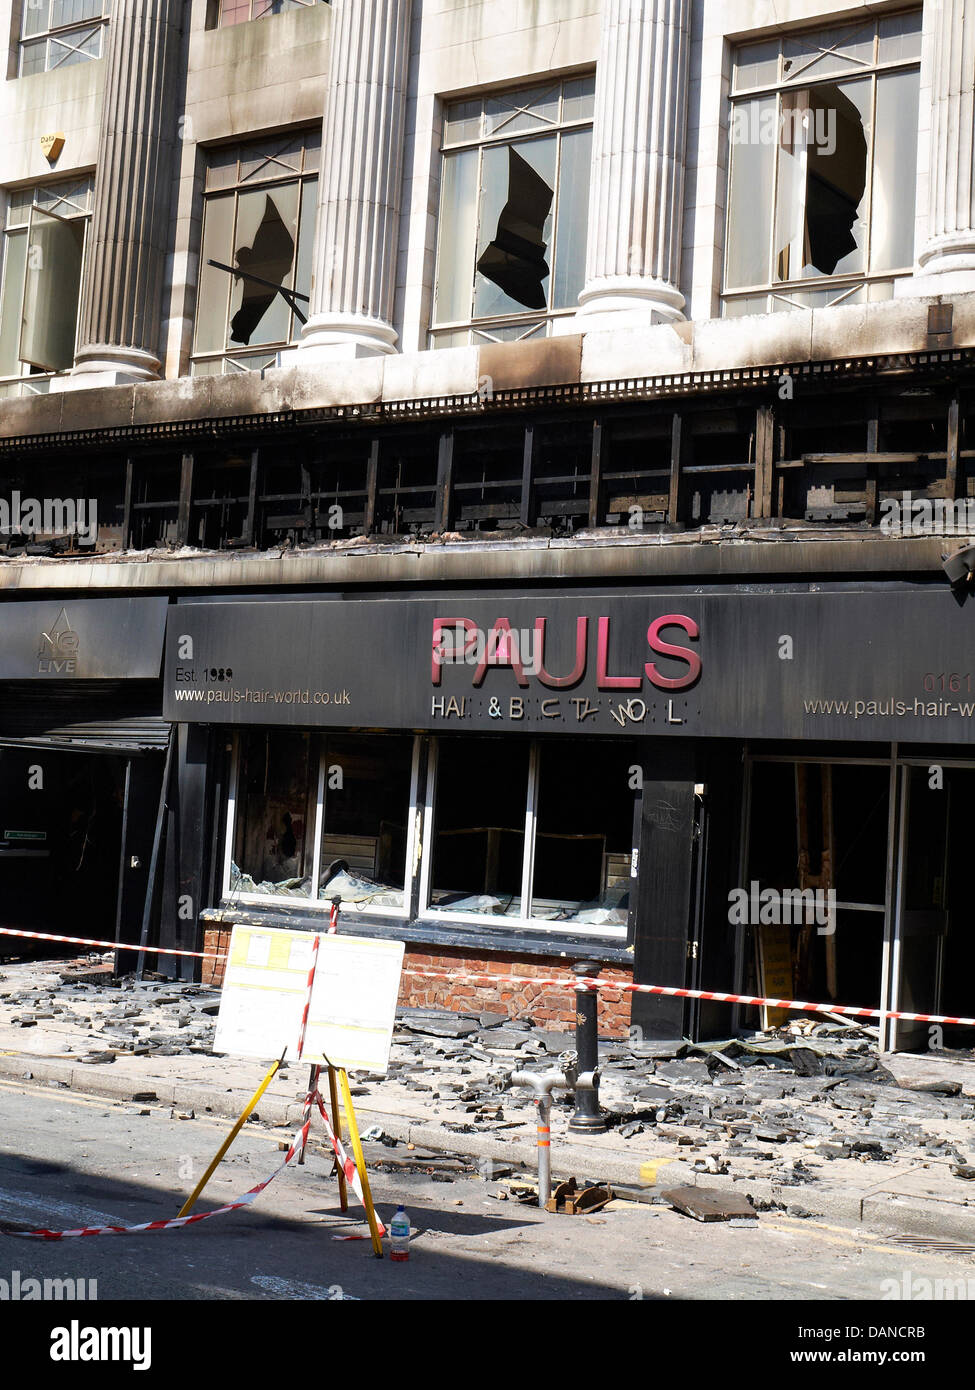 Manchester, UK. 16th July, 2013. Pauls hairshop in Oldham Street, which was destroyed  by fire on Saturday 13th - Stock Image